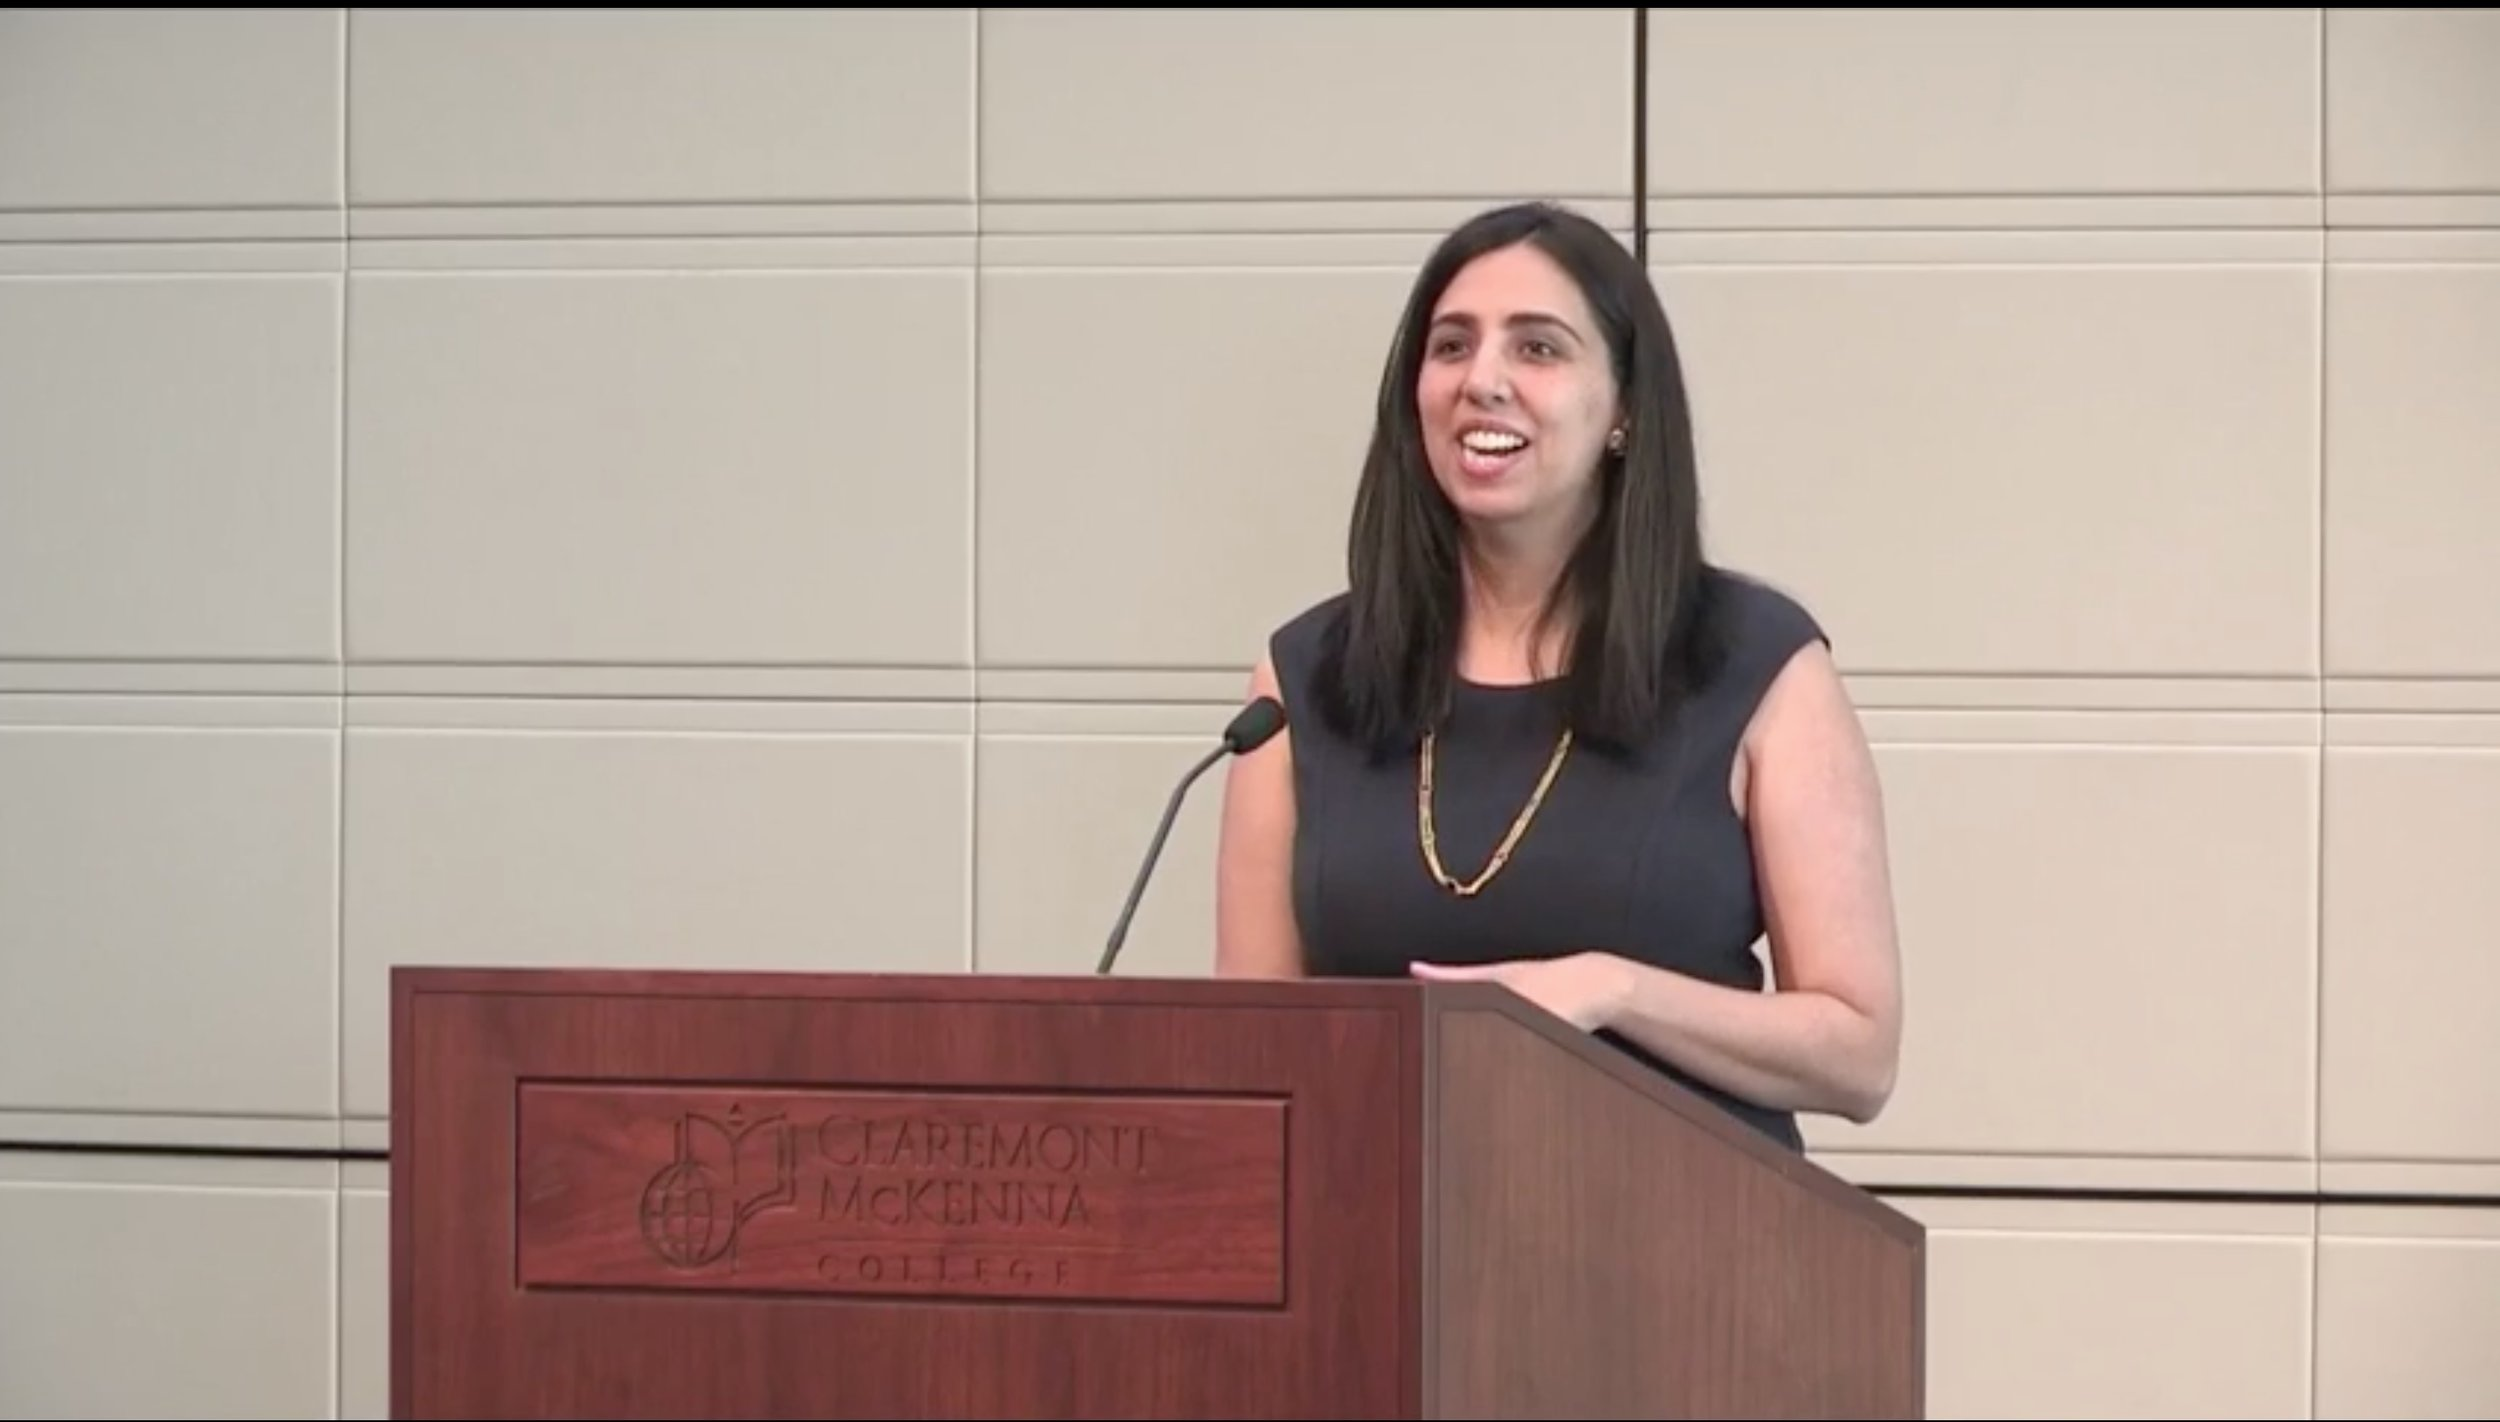 Archana Sahgal '99 speaking at the 9th Women and Leadership Conference